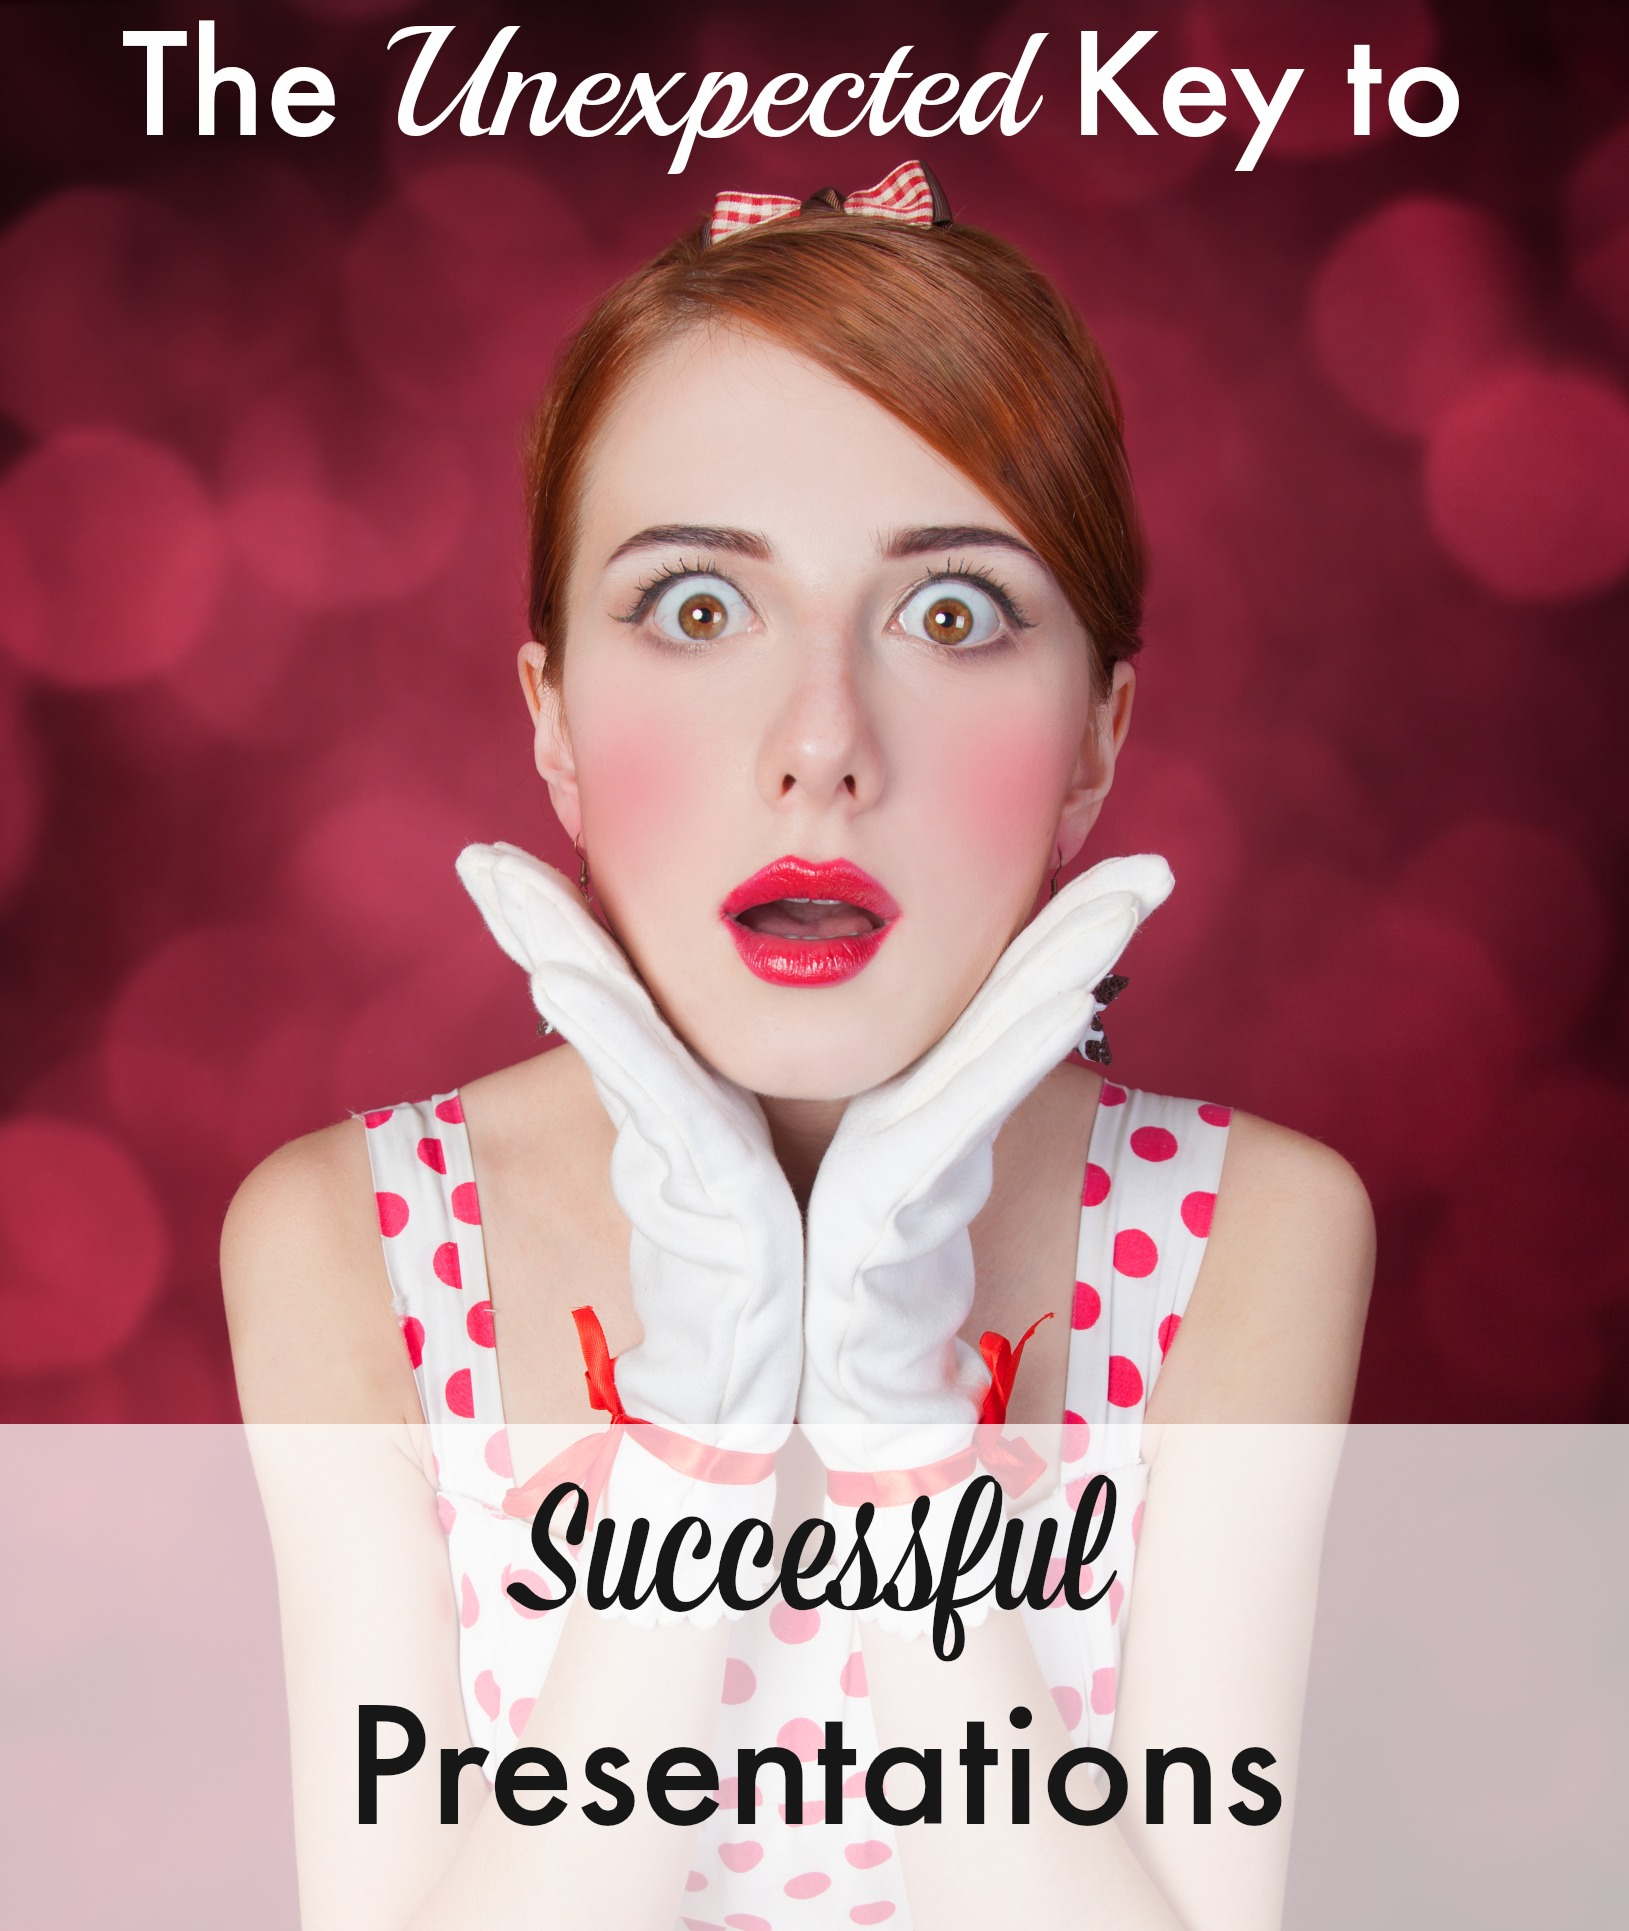 the key to successful presentations Successful oral presentation in english or any other language which is important to think about in preparing for and giving an oral presentation the first one deals with preparation and planning preparation and practice can be the keys to success.